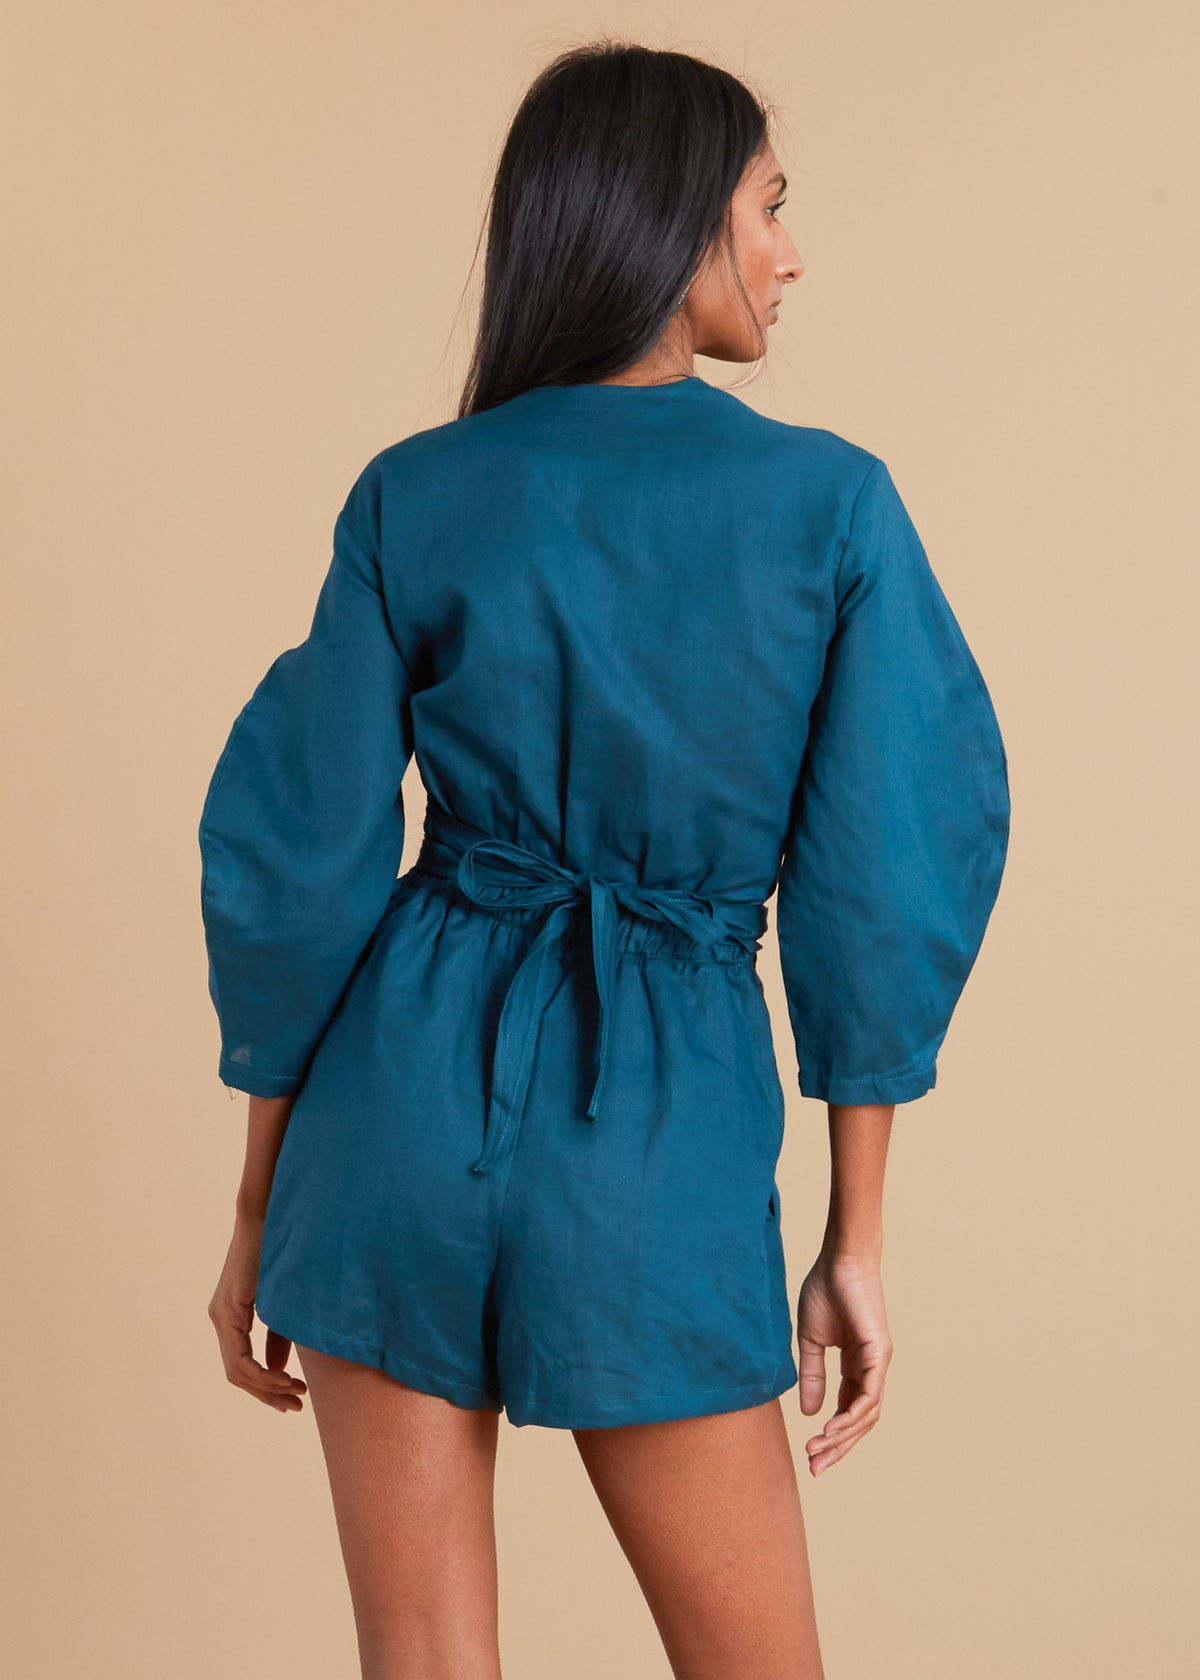 Teal oval long sleeve linen romper